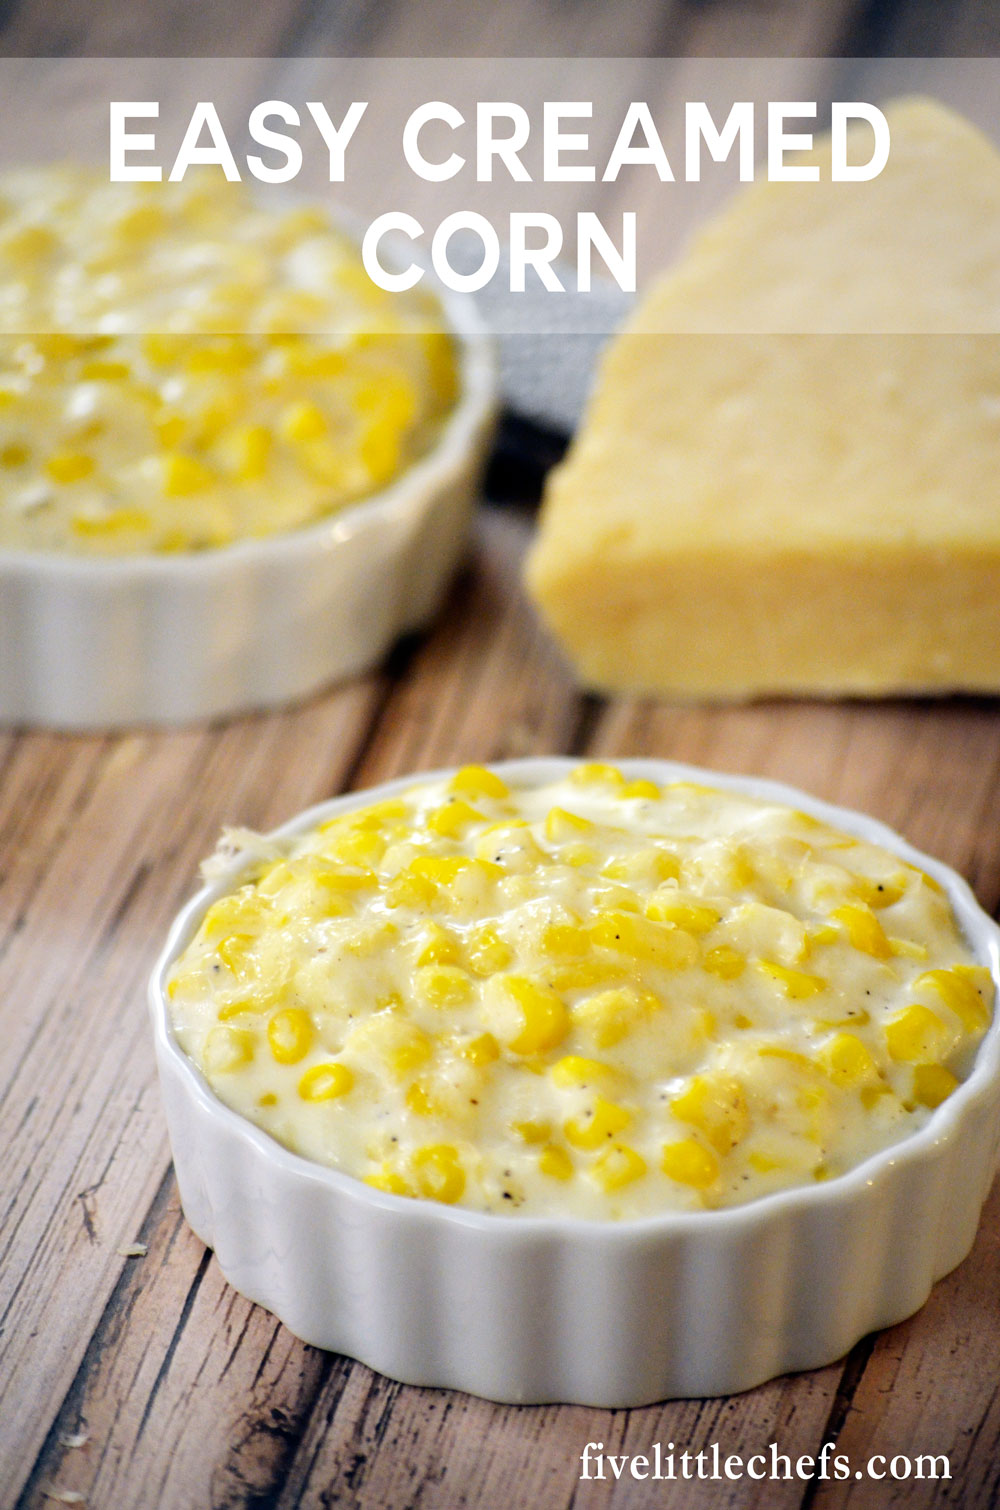 Easy Creamed Corn is a favorite side dish. This recipe can be made just before serving or in the morning and kept in the crock pot.